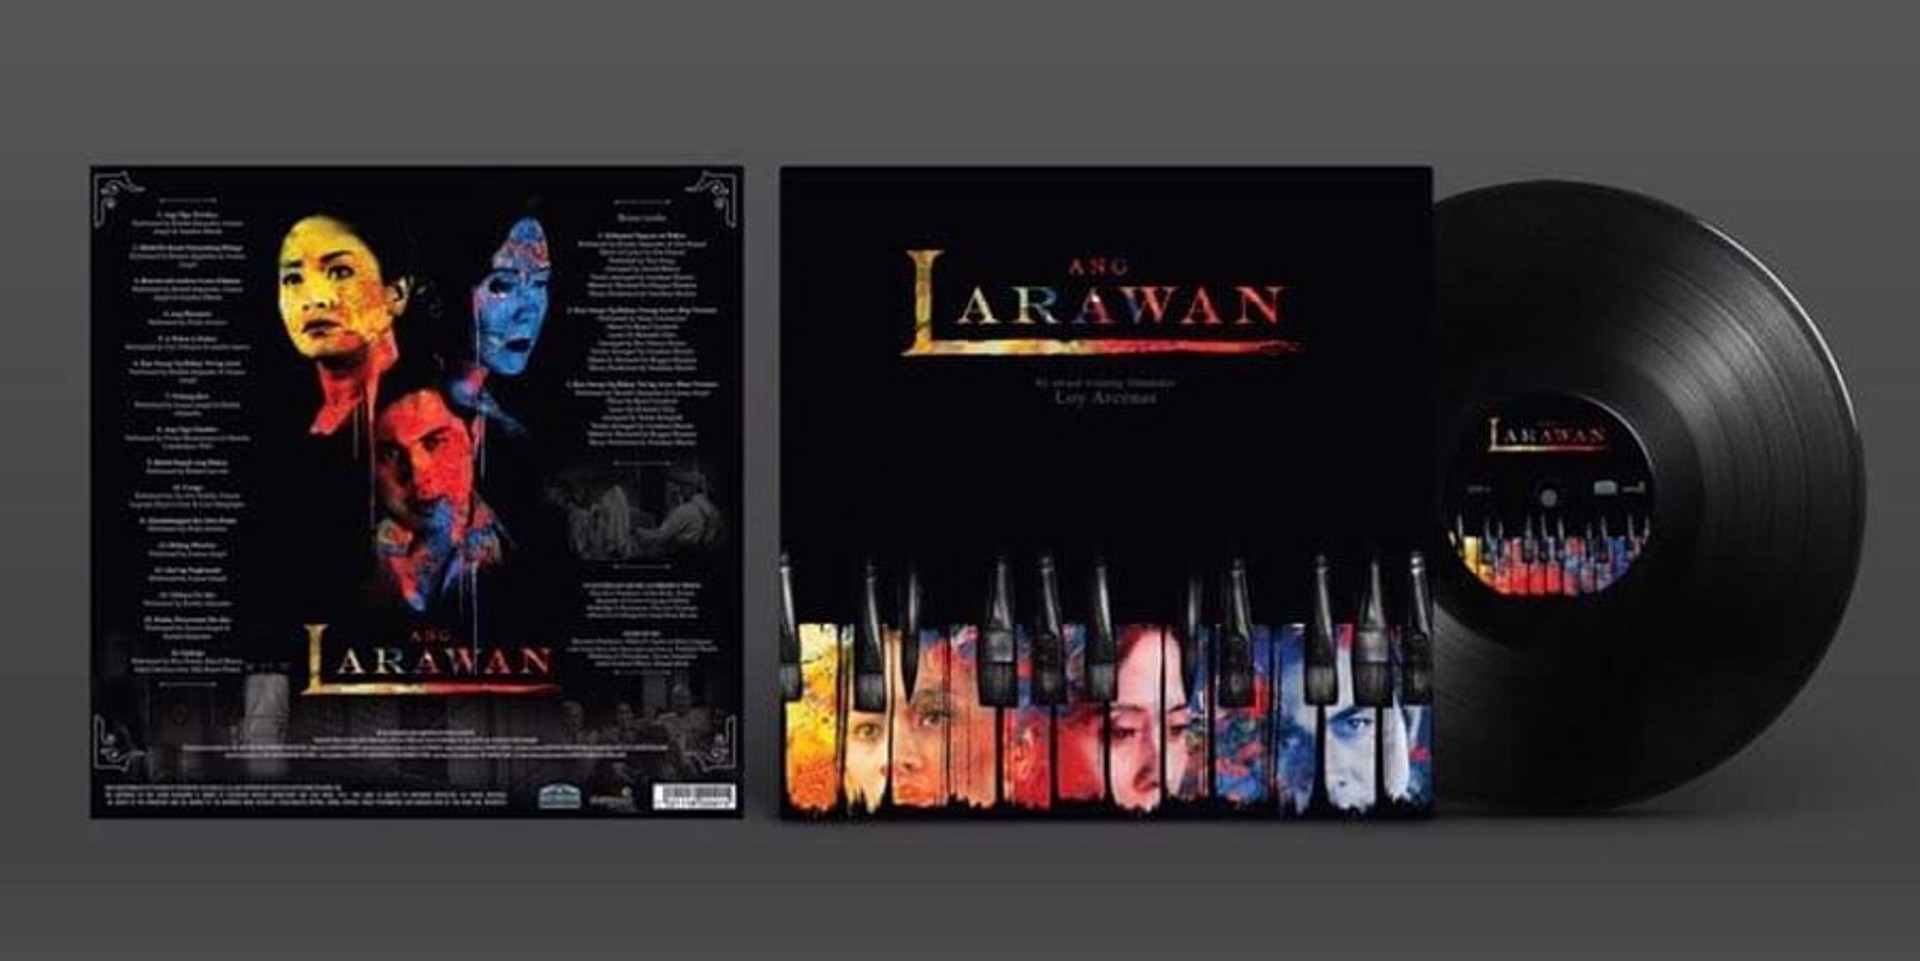 Ang Larawan Original Soundtrack released on limited edition vinyl